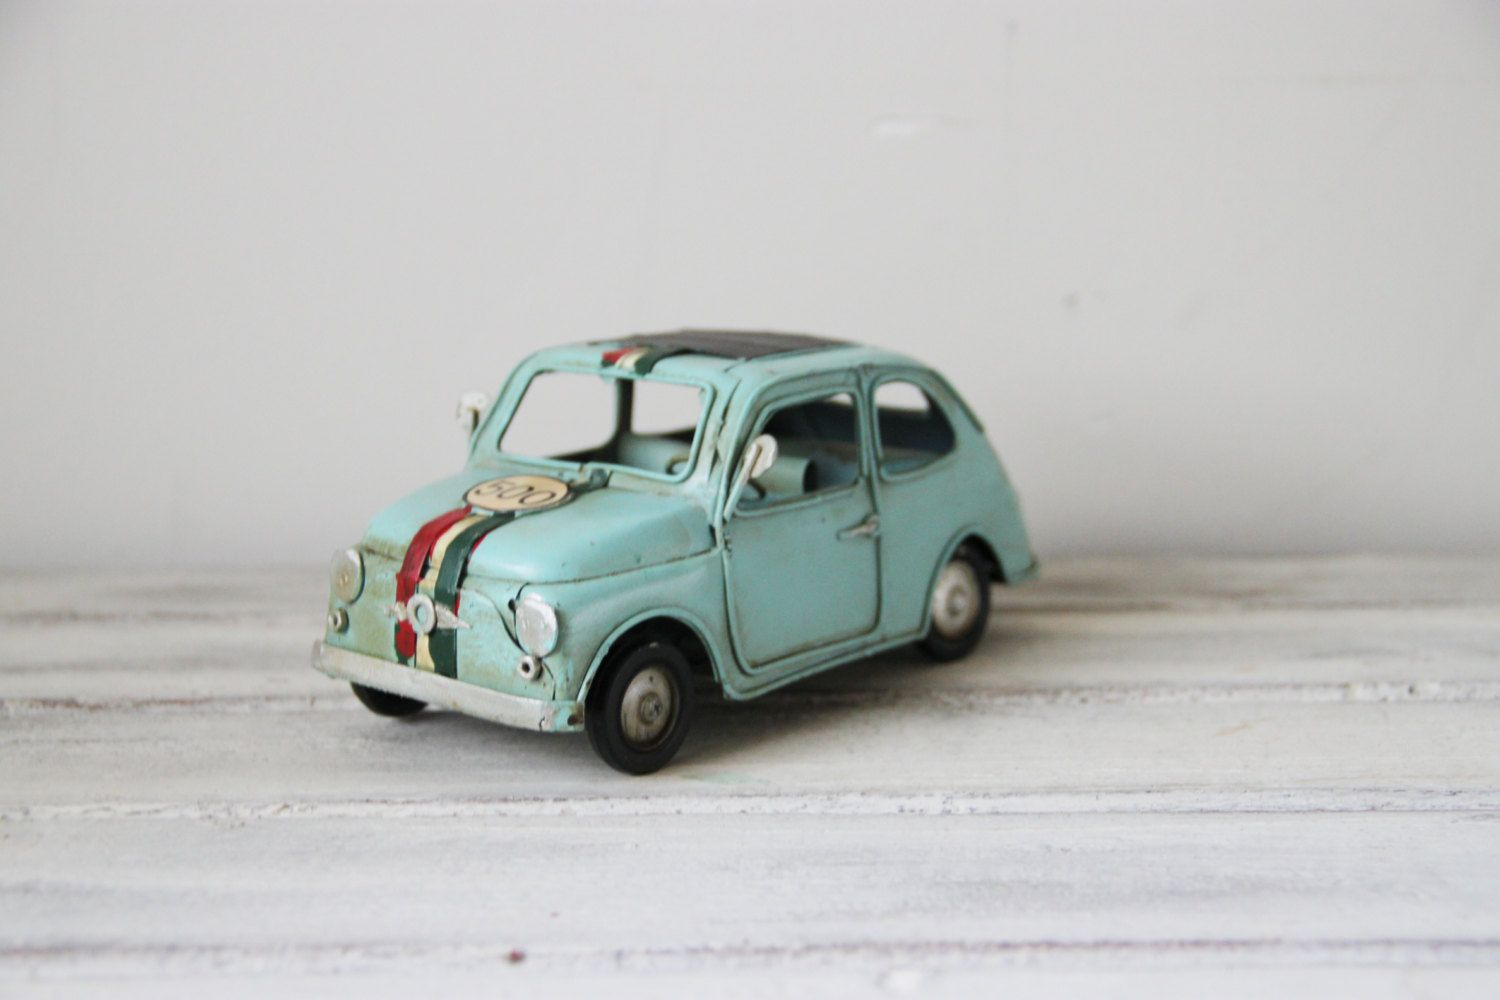 Fiat 500 Retro Vintage Turquoise Miniature Fiat Car 500 Is A Retro